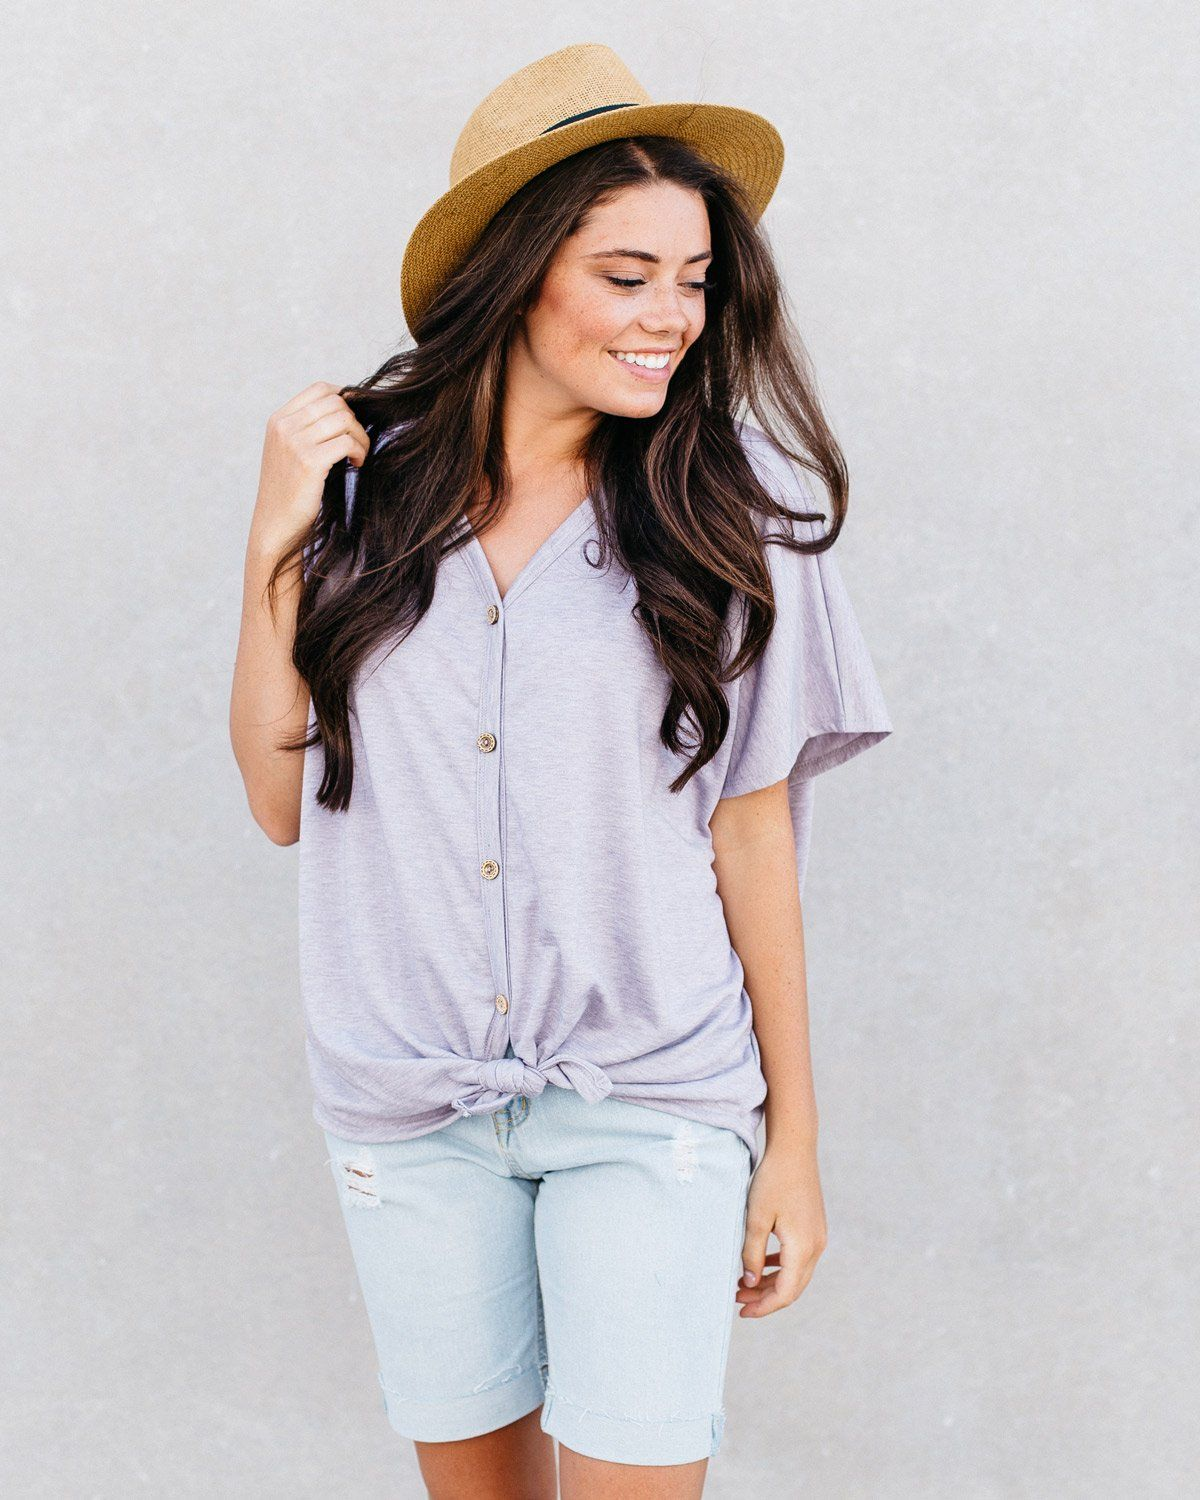 e7e94602 Jolie Button-Down Knotted T-Shirt This oversized v-neck shirt buttons up